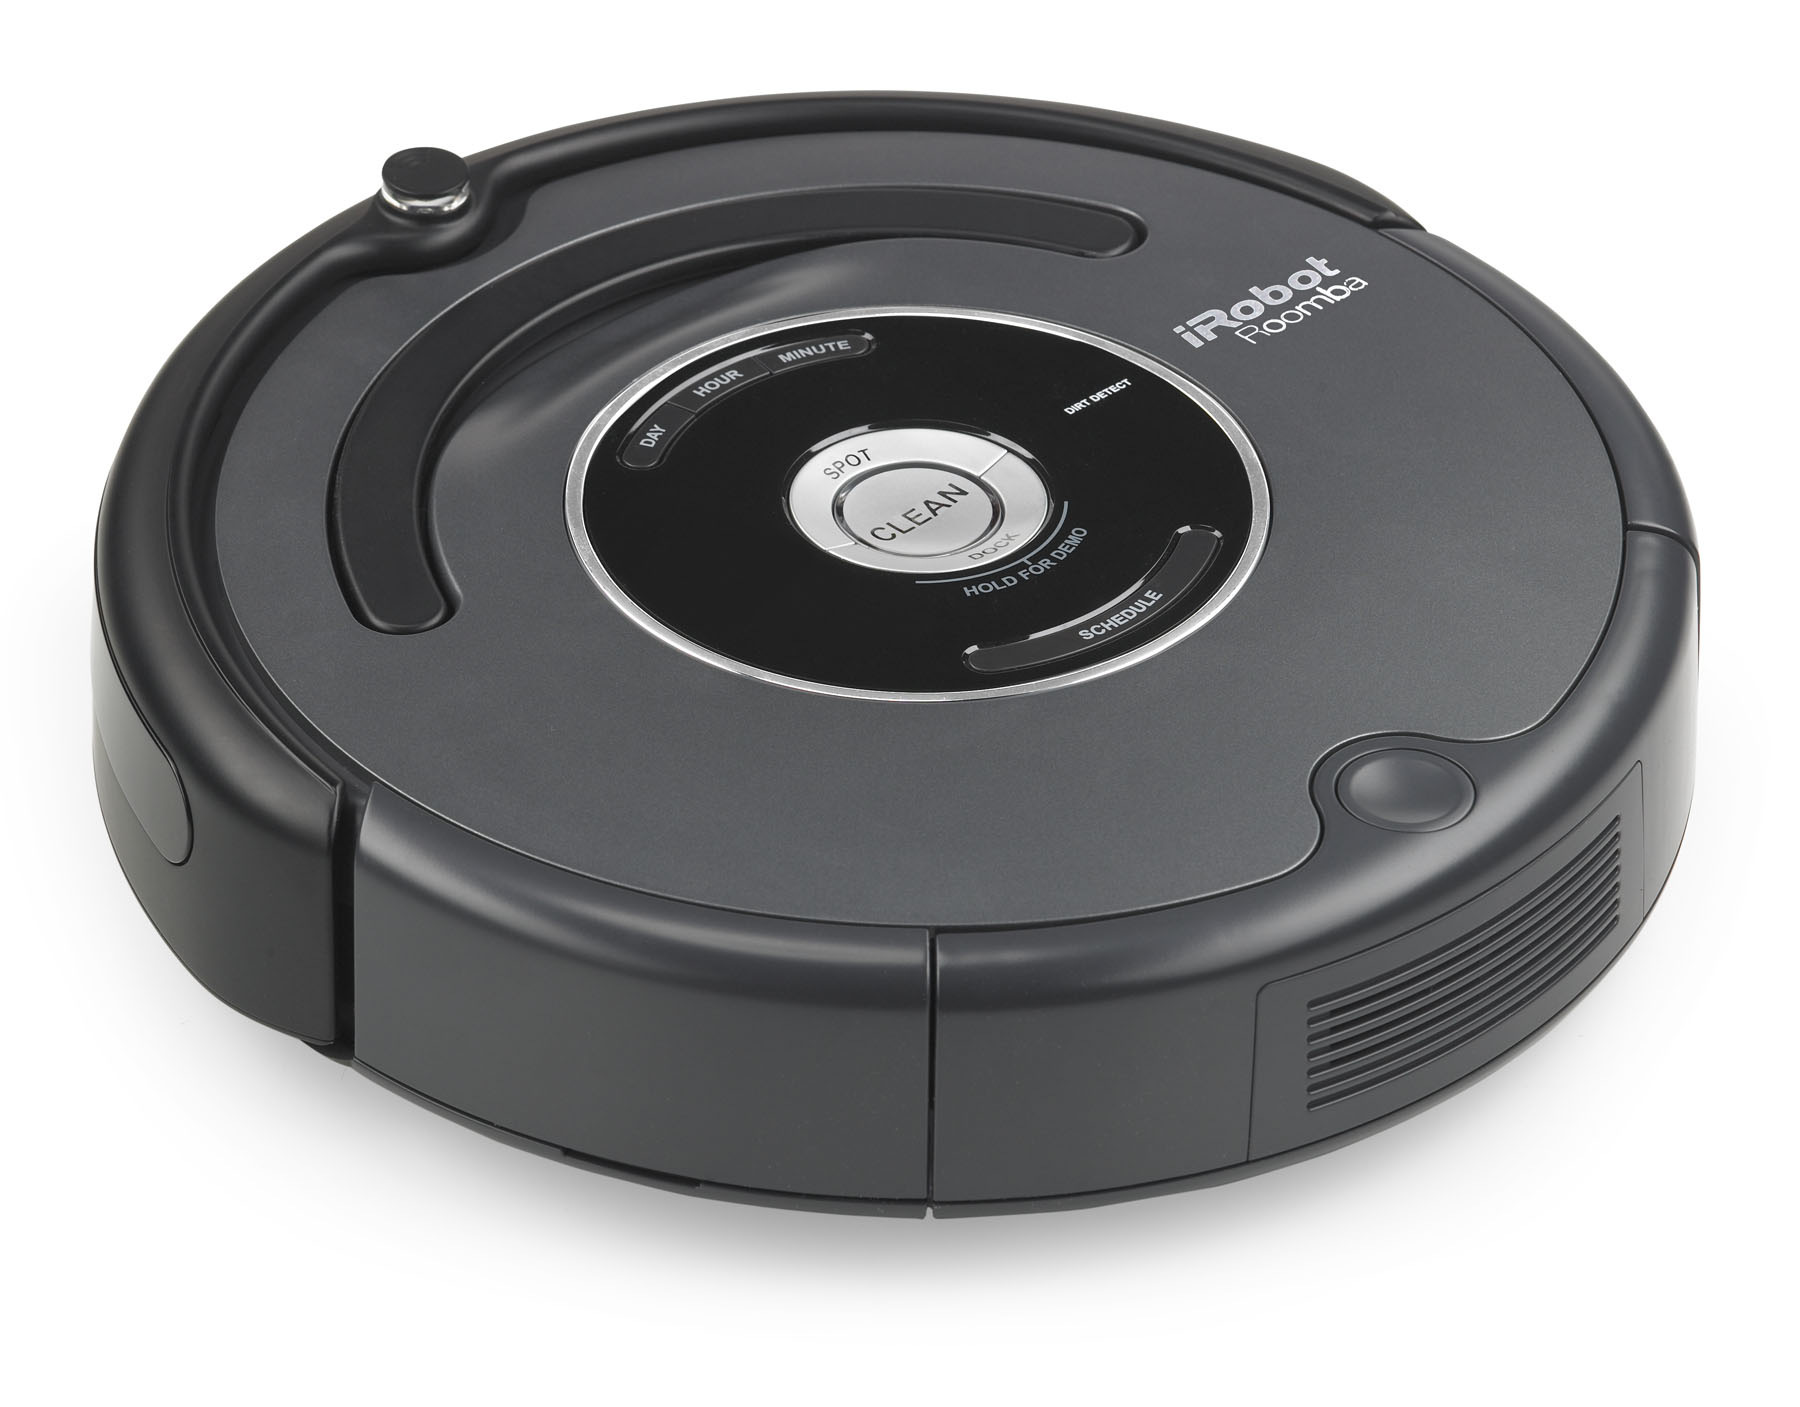 roomba robot supremacy wiki fandom powered by wikia. Black Bedroom Furniture Sets. Home Design Ideas